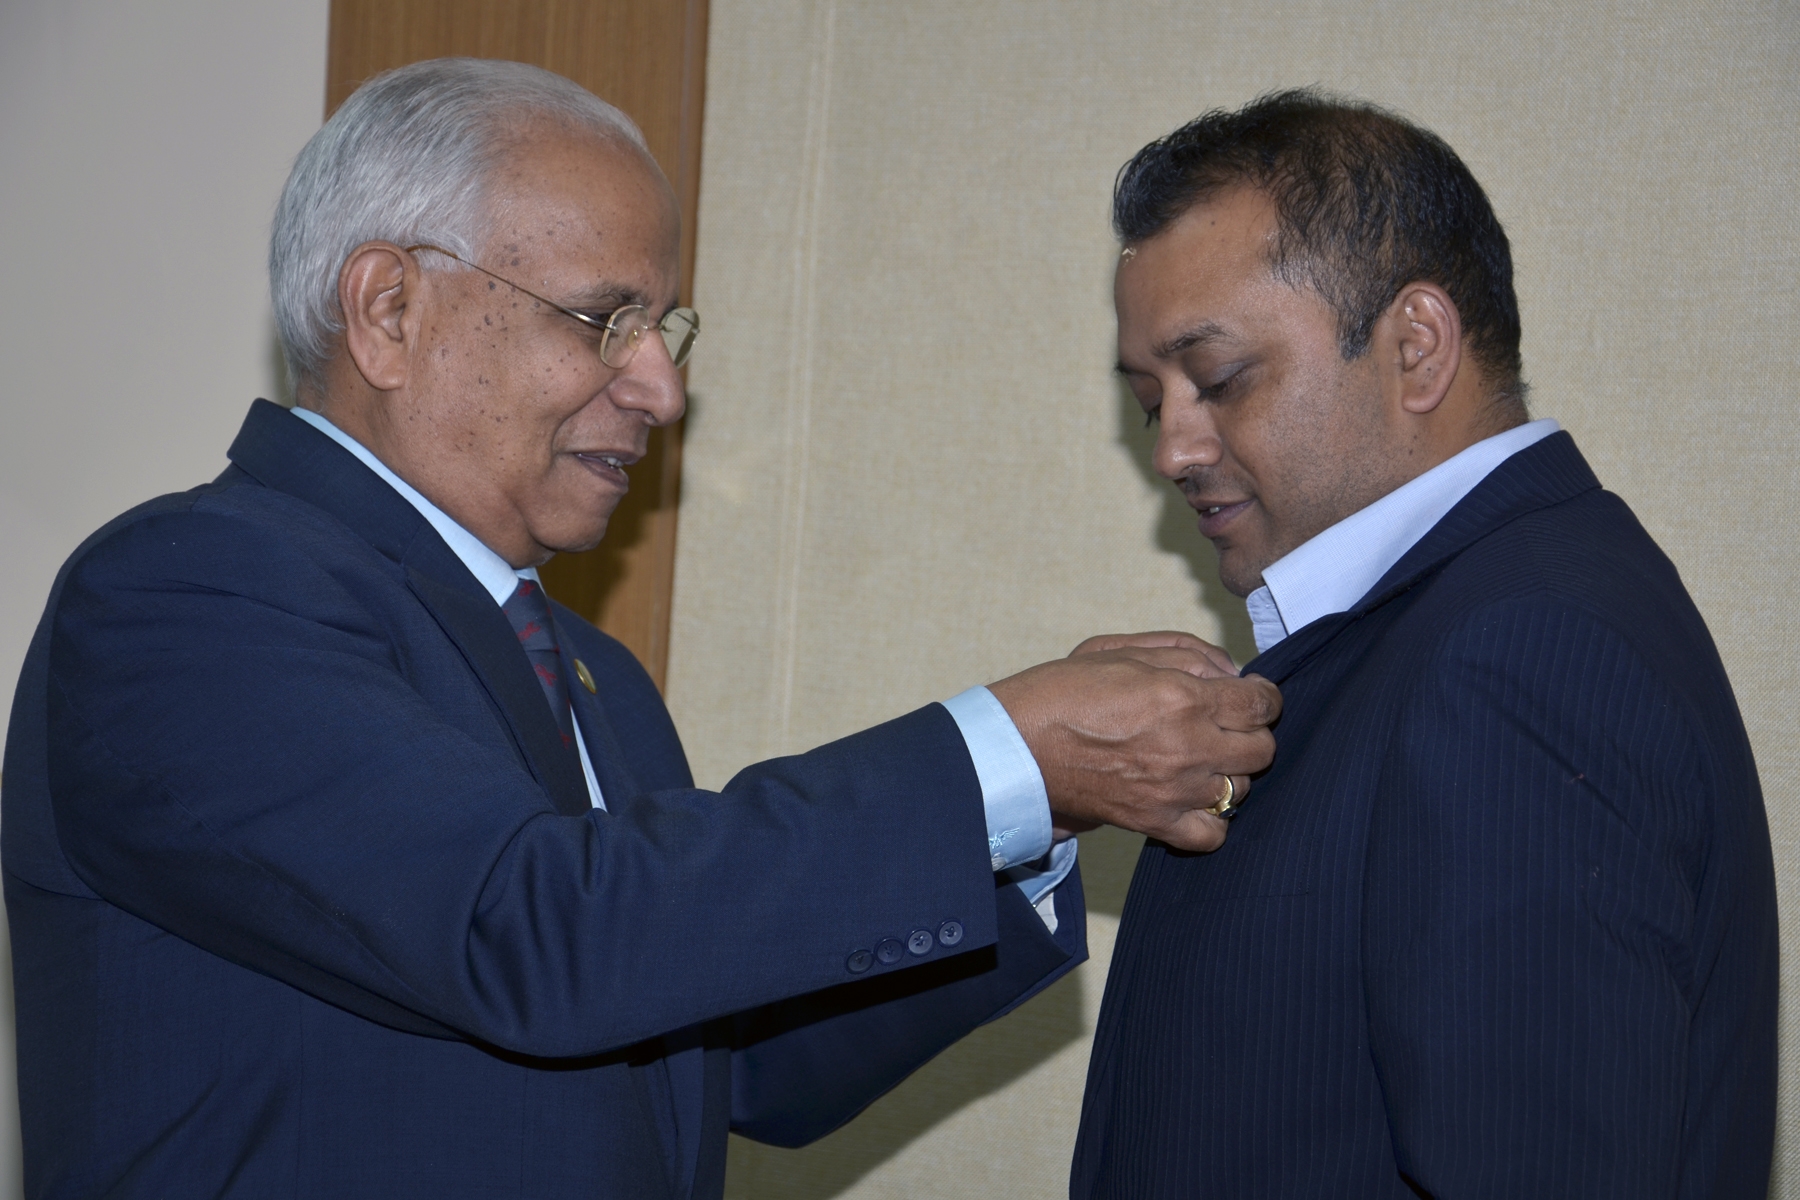 United Nations Secretary-General's Special Envoy for AIDS in Asia and in the Pacific, J.V.R. Prasada Rao pins a red ribbon on the jacket of the Minister of Health of Nepal, Gagan Kumar Thapa